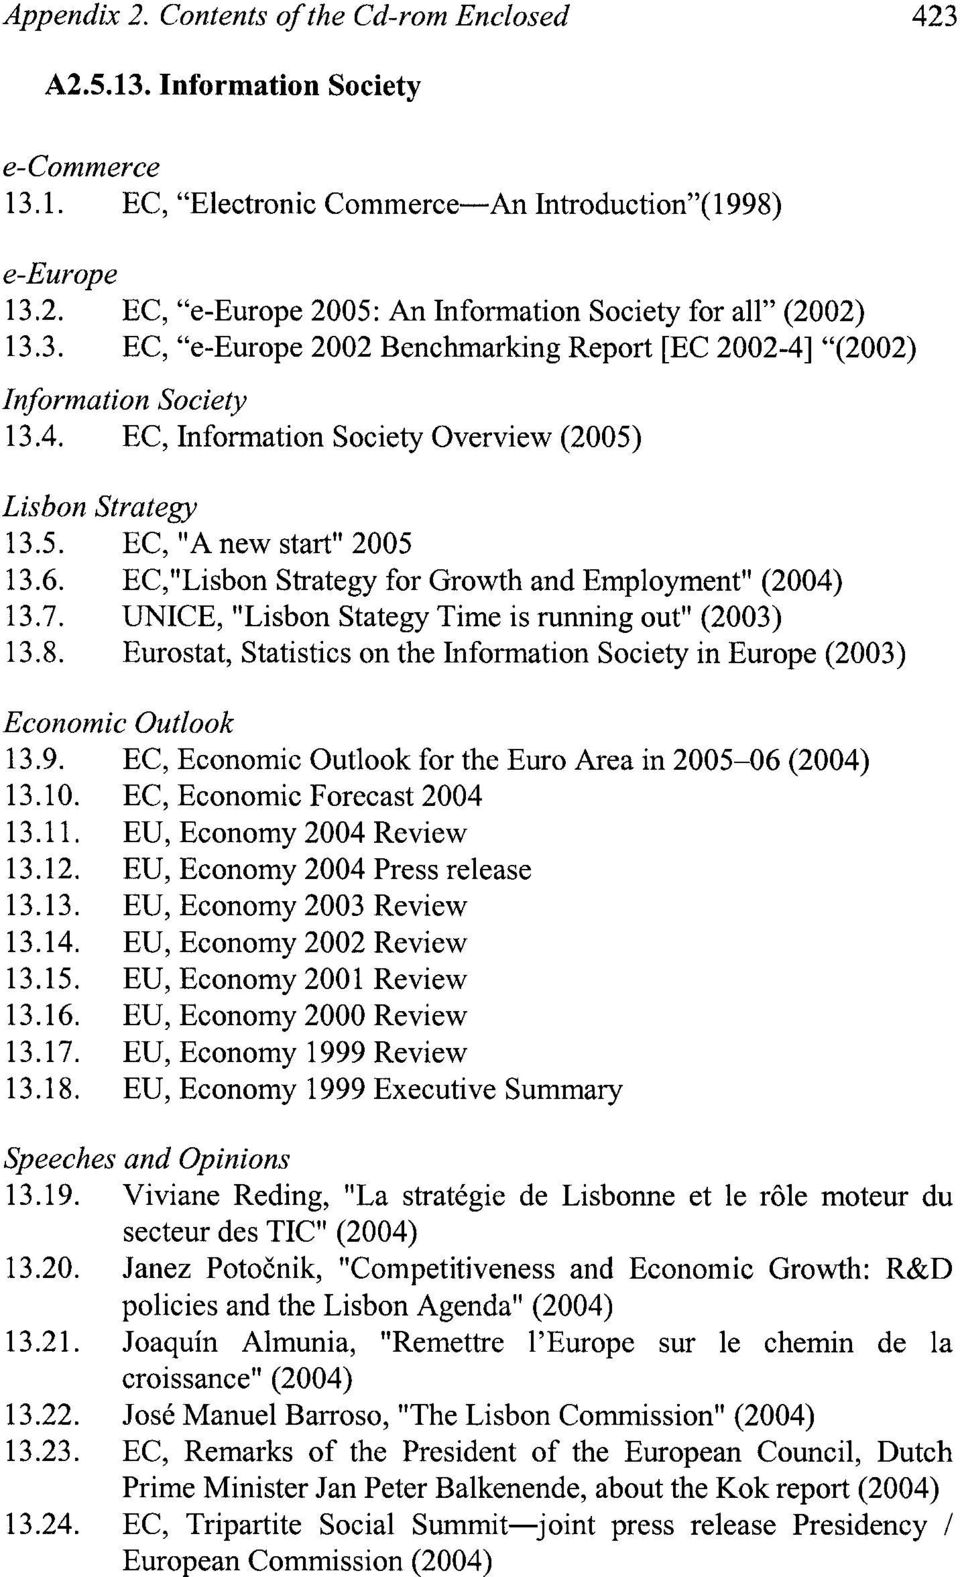 "EC,""Lisbon Strategy for Growth and Employment"" (2004) 13.7. UNICE, ""Lisbon Stategy Time is running out"" (2003) 13.8."